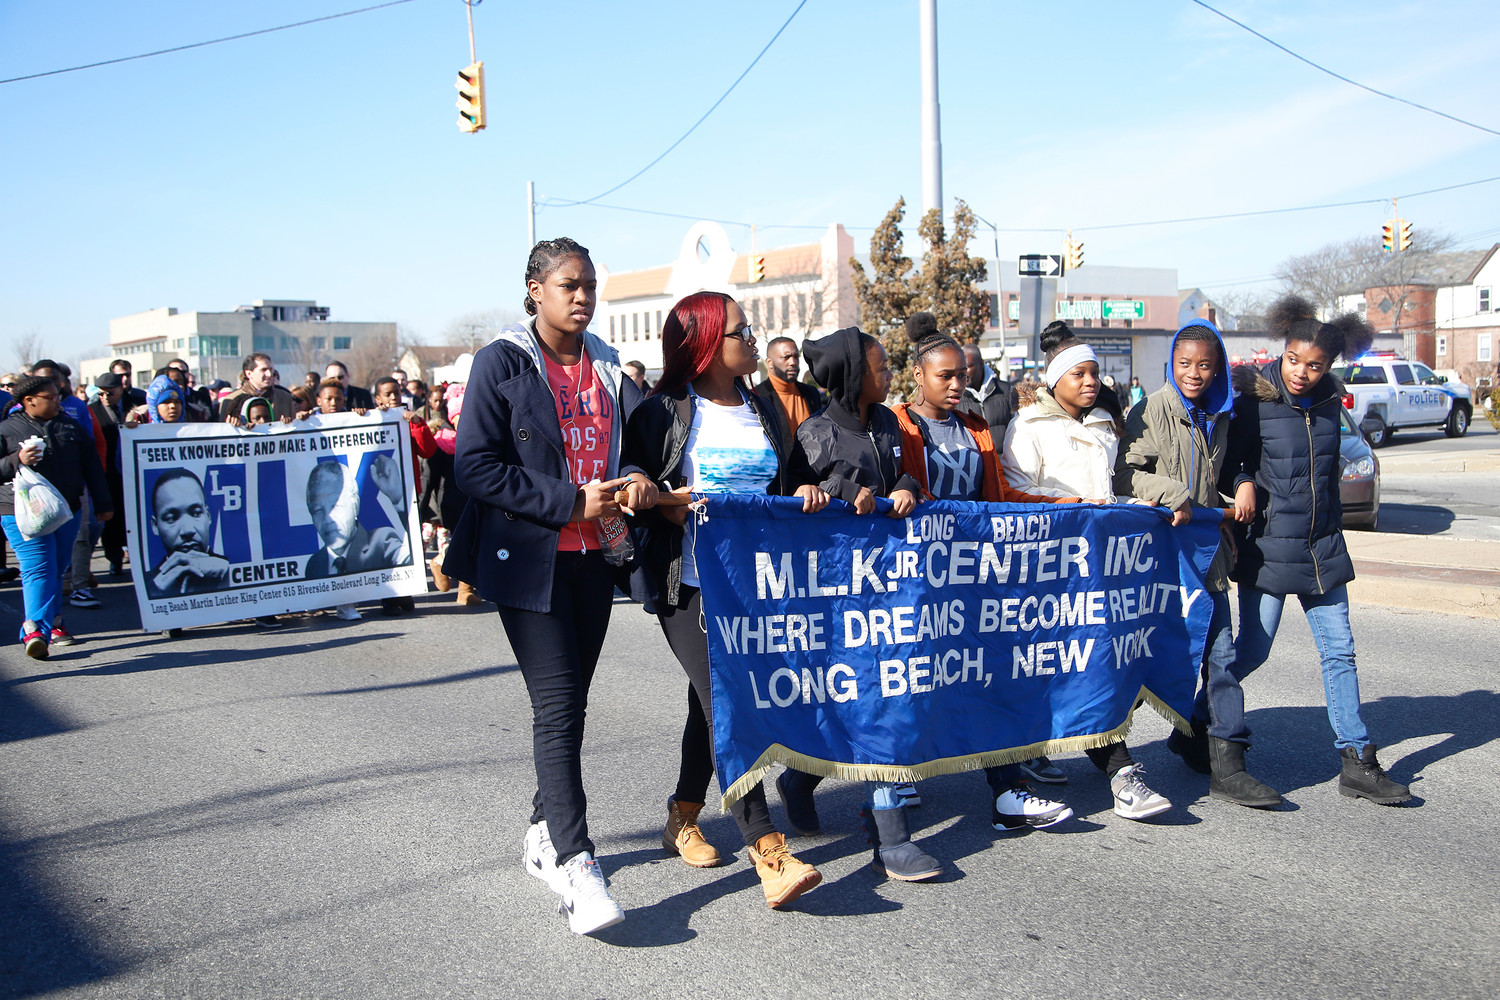 Hundreds turned out for last year's march, which closely followed the route Martin Luther King Jr. walked during his visit to Long Beach in 1968.